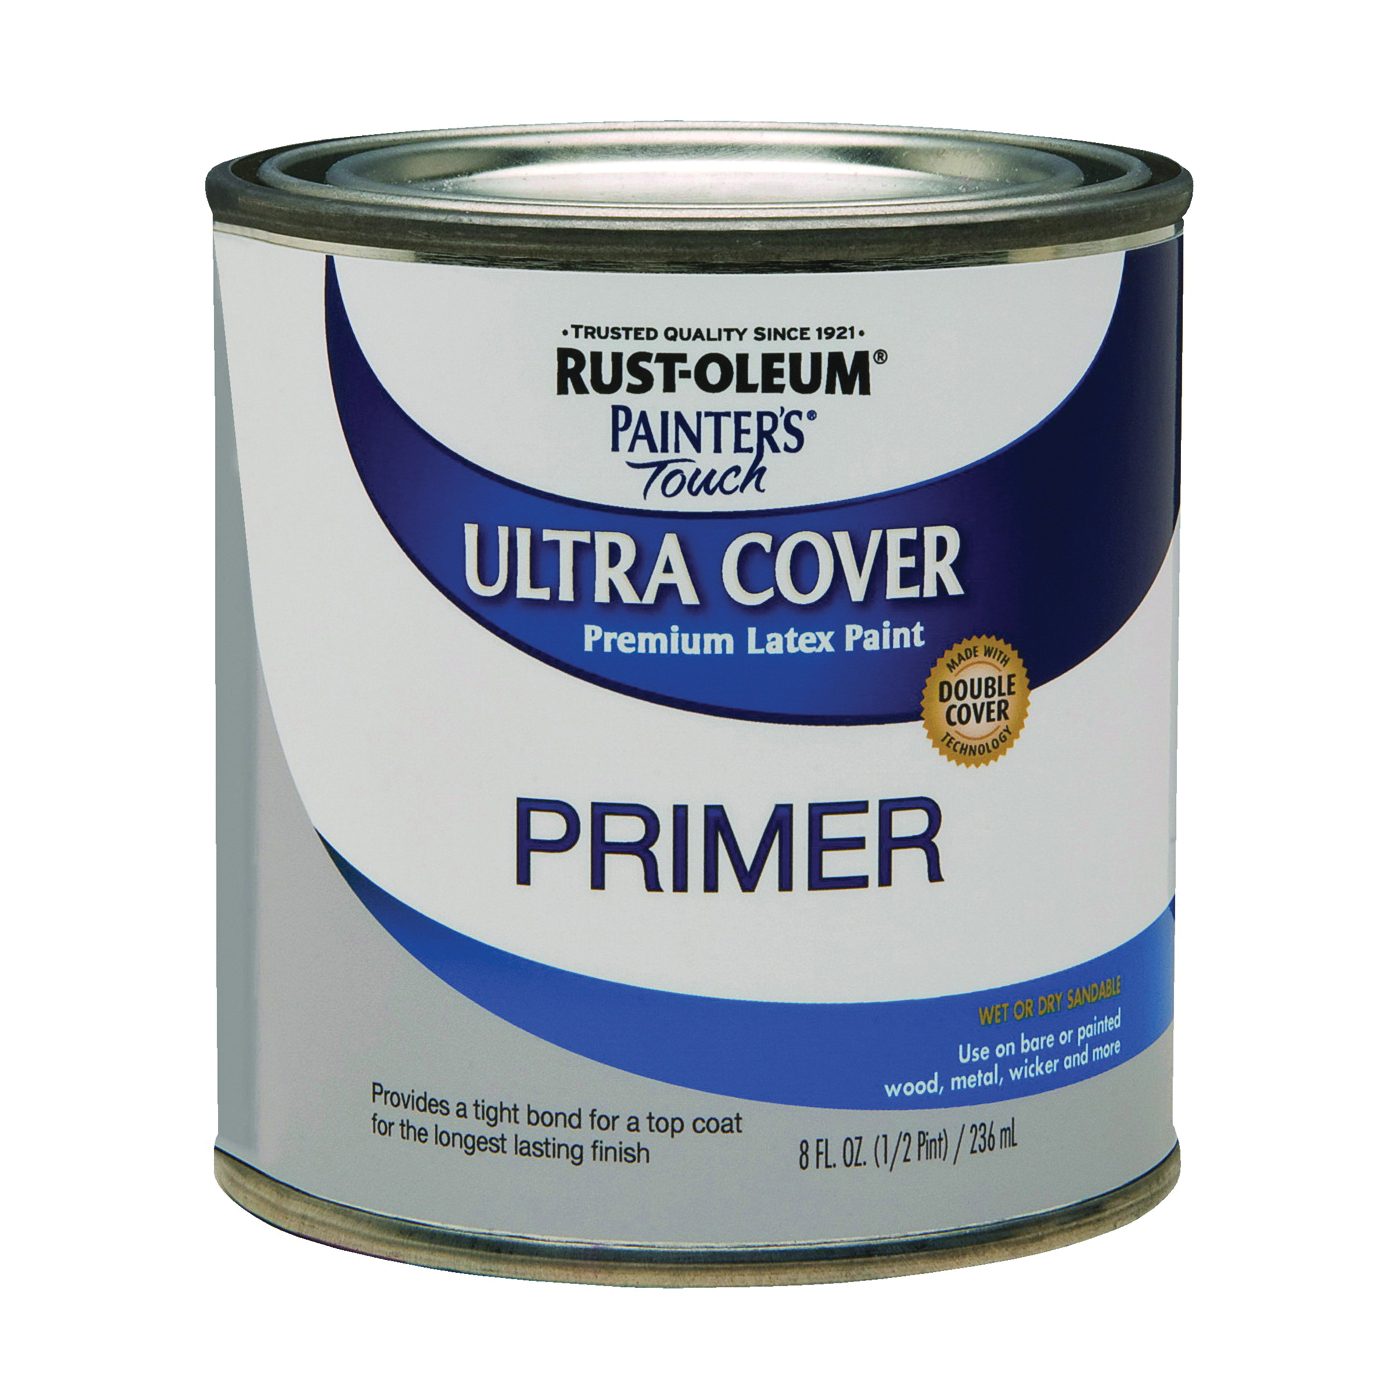 Picture of RUST-OLEUM PAINTER'S Touch 1980730 Exterior Primer, Flat, Gray, 0.5 pt, Can